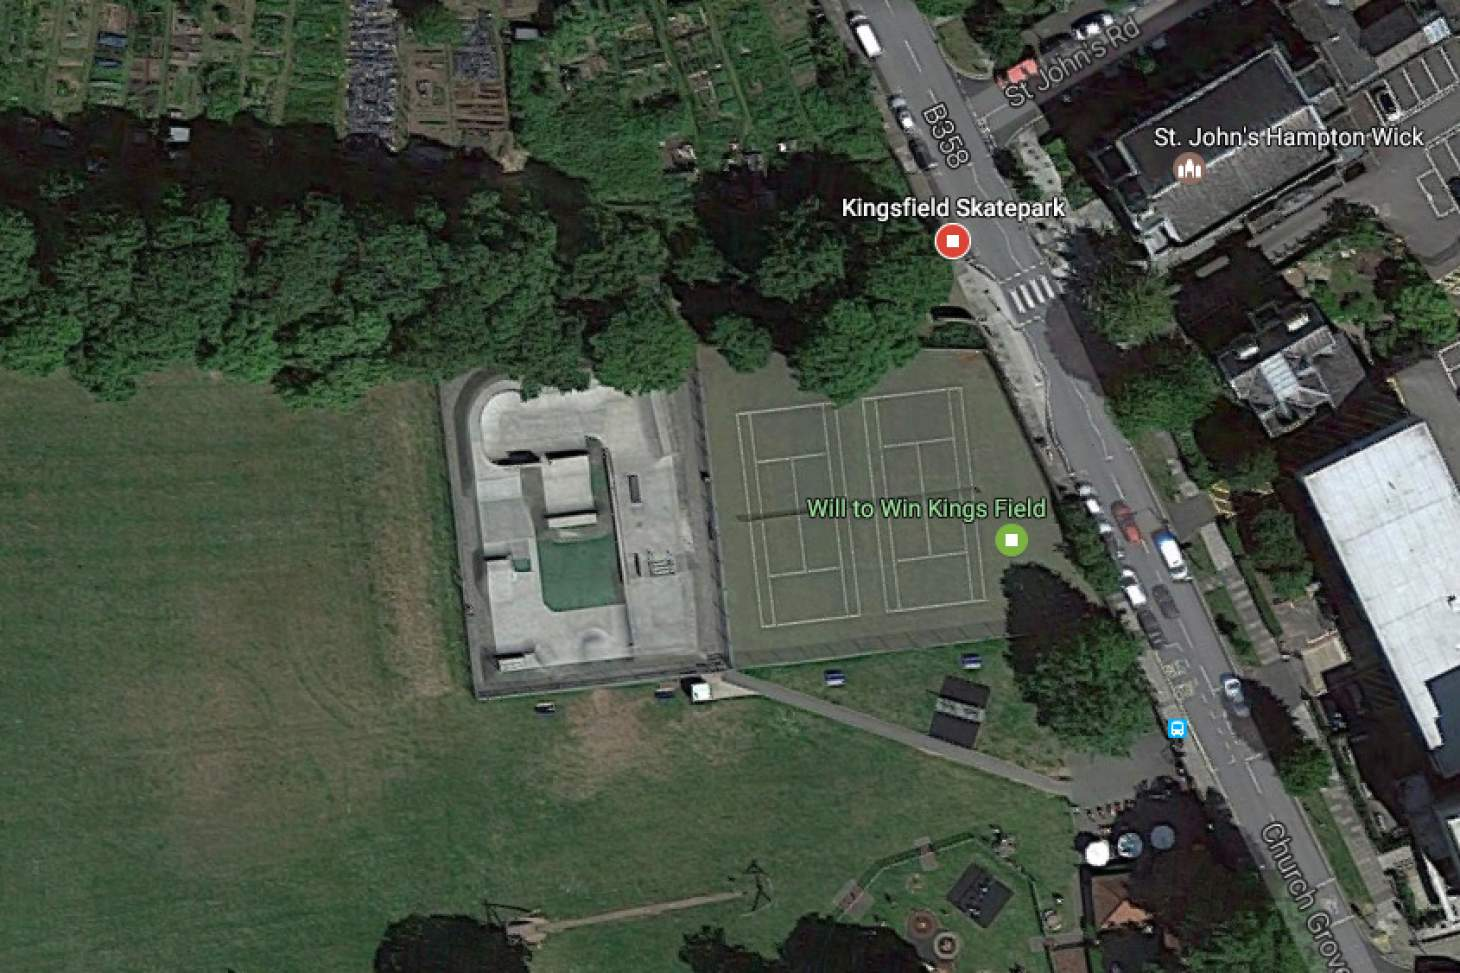 Kings Field Outdoor | Hard (macadam) tennis court